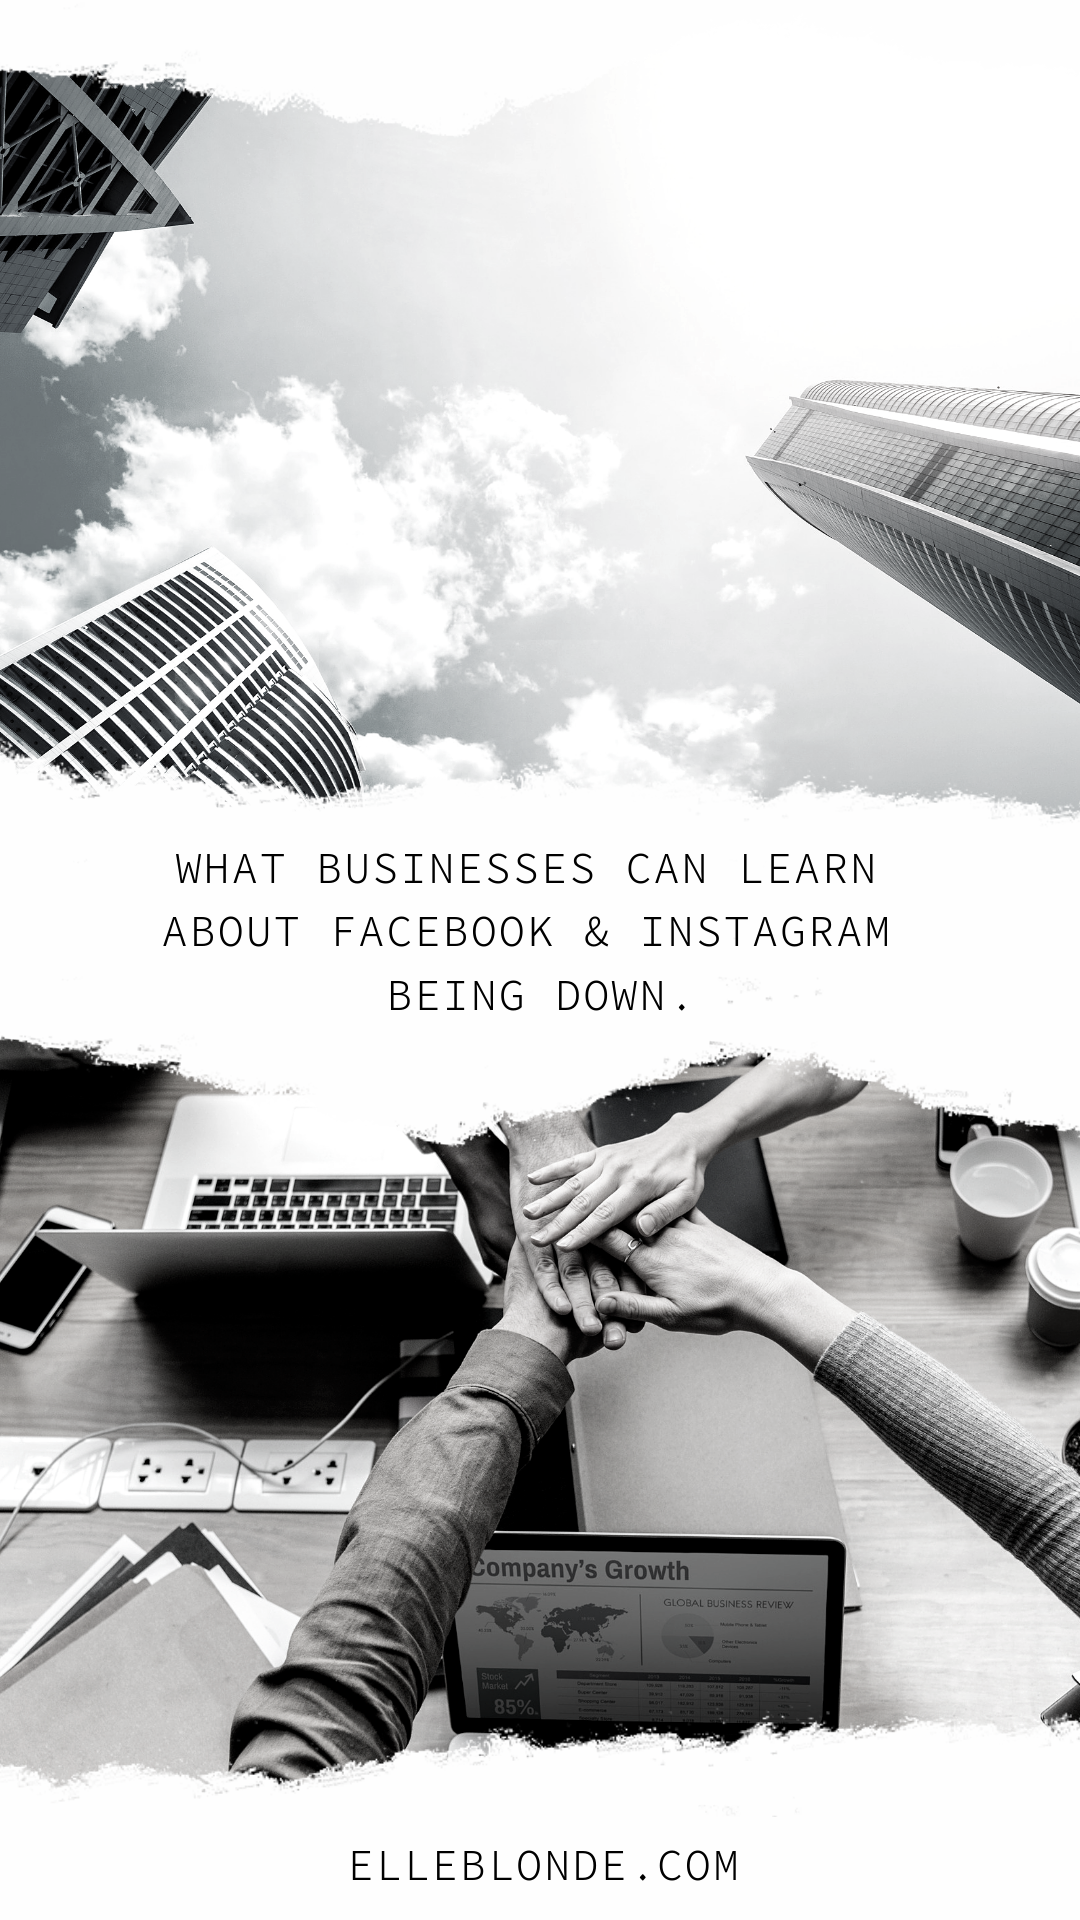 5 Business Lessons We Can Learn From Facebook and Instagram Going Down 1